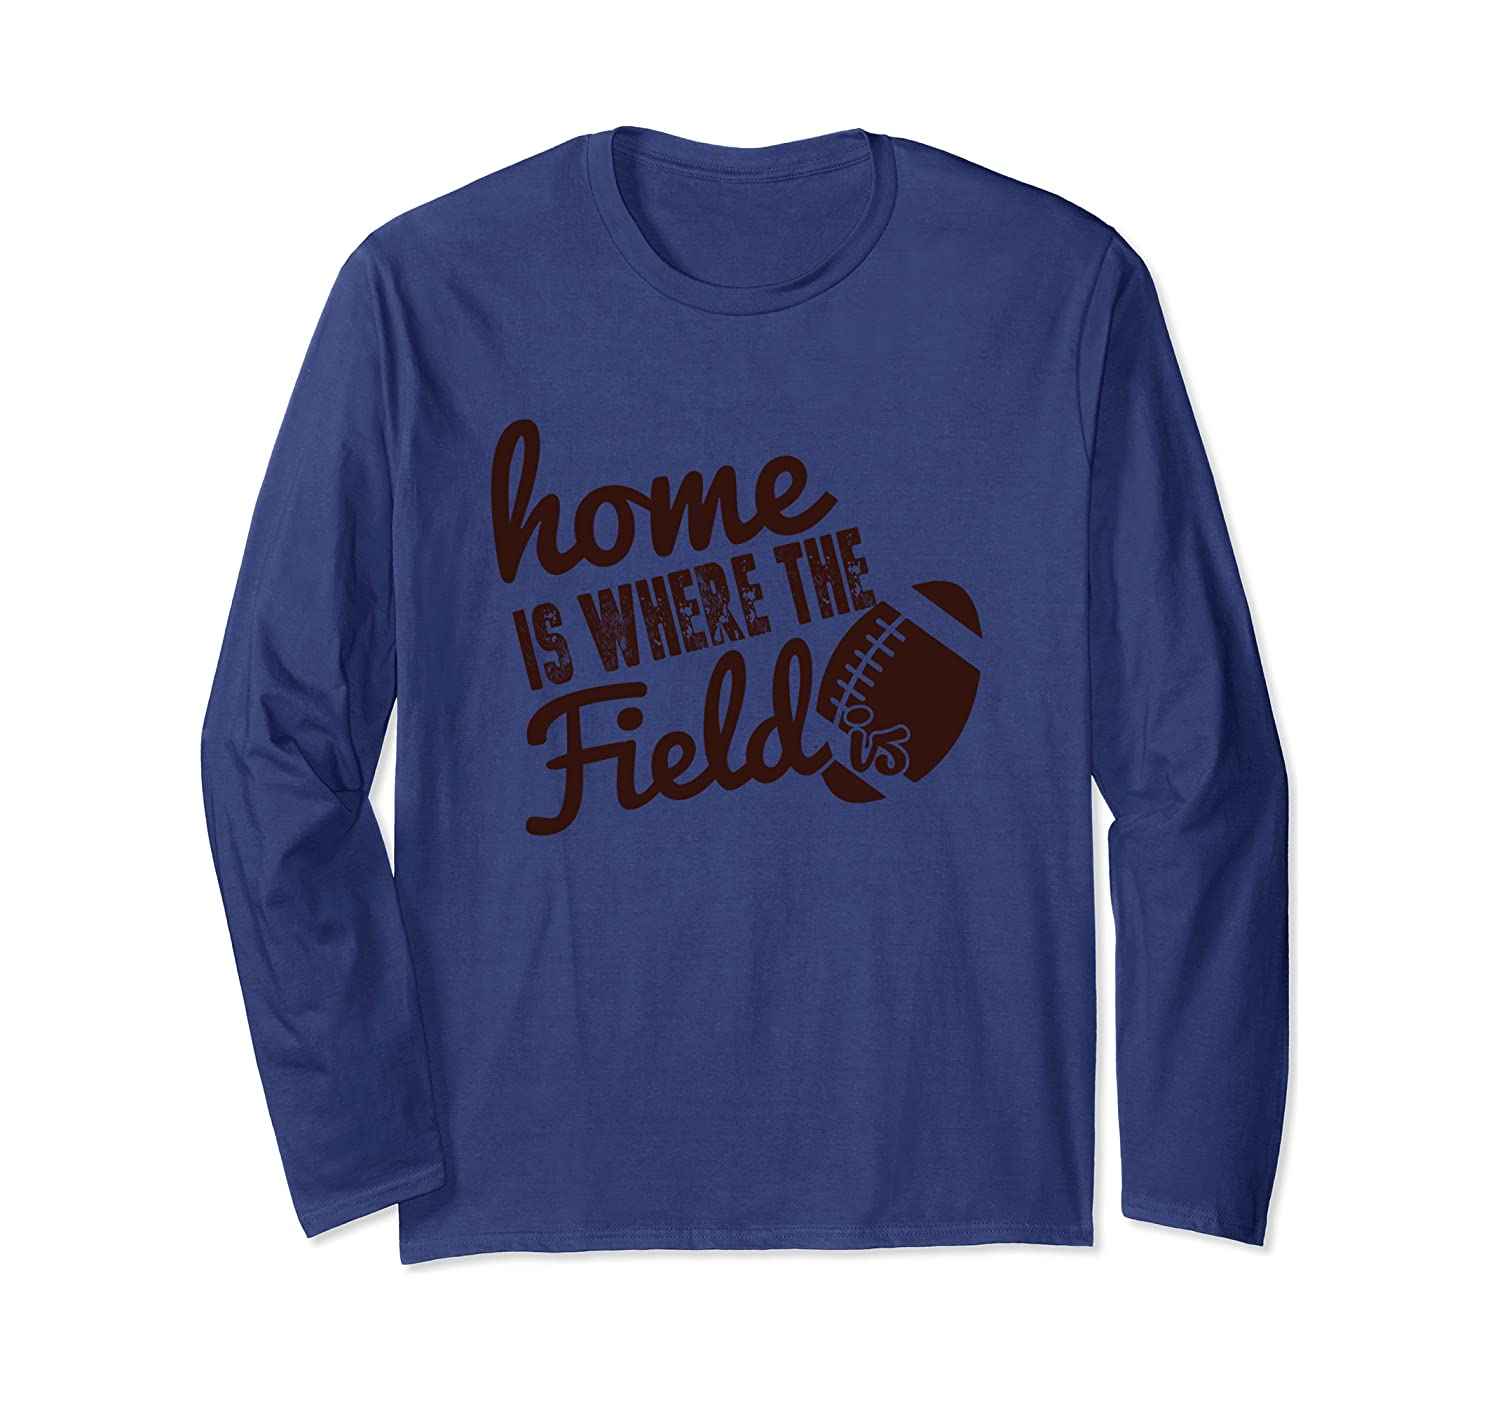 Home Is Where The Field Is - Funny Football T Shirt